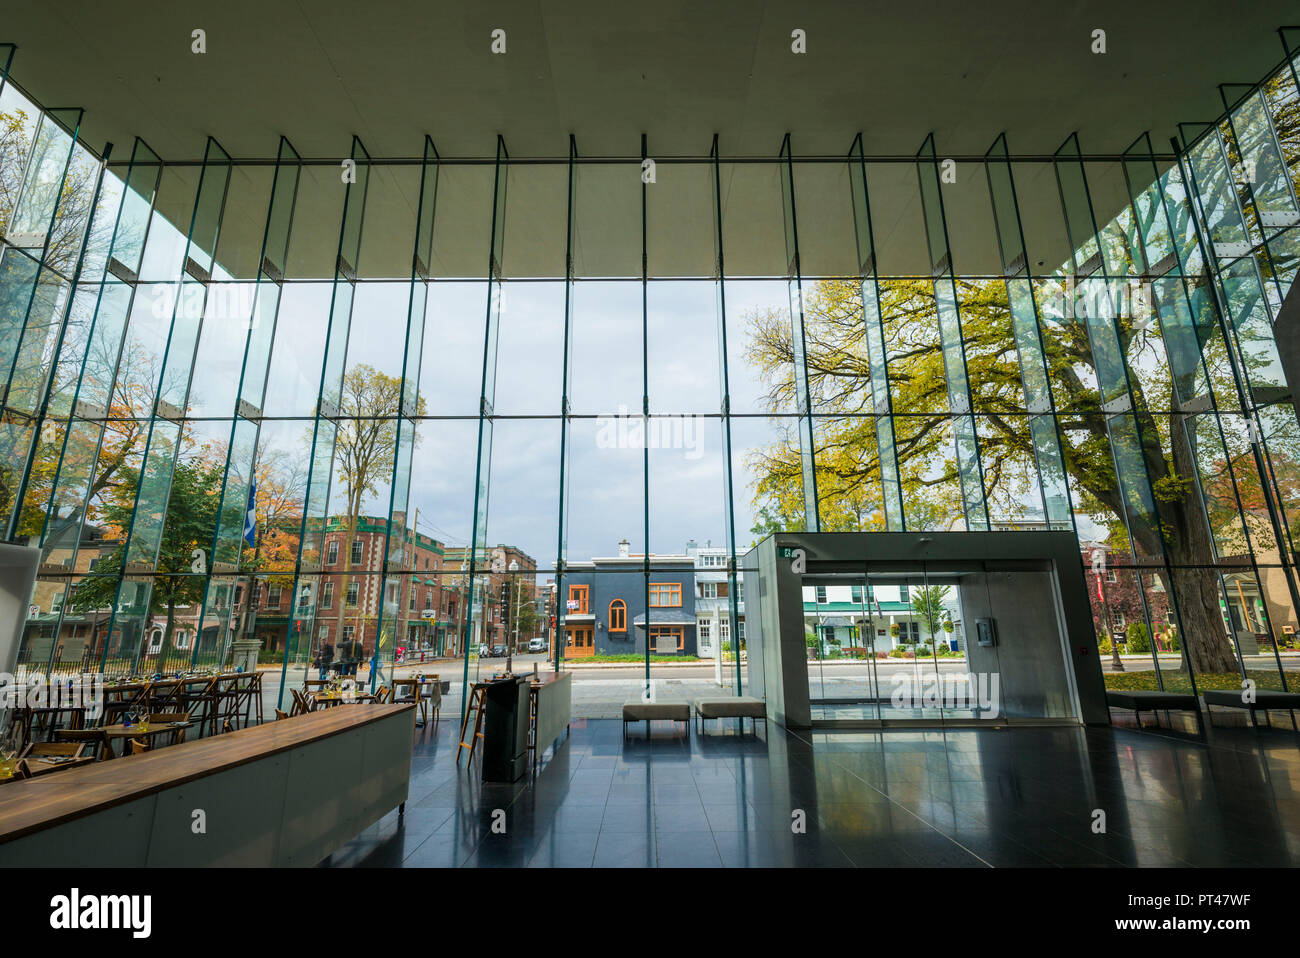 Canada, Quebec, Quebec City, Musee National des Beaux-Arts du Quebec, MNBAQ, pavillon Pierre-Lassonde, 2016, interior Stock Photo